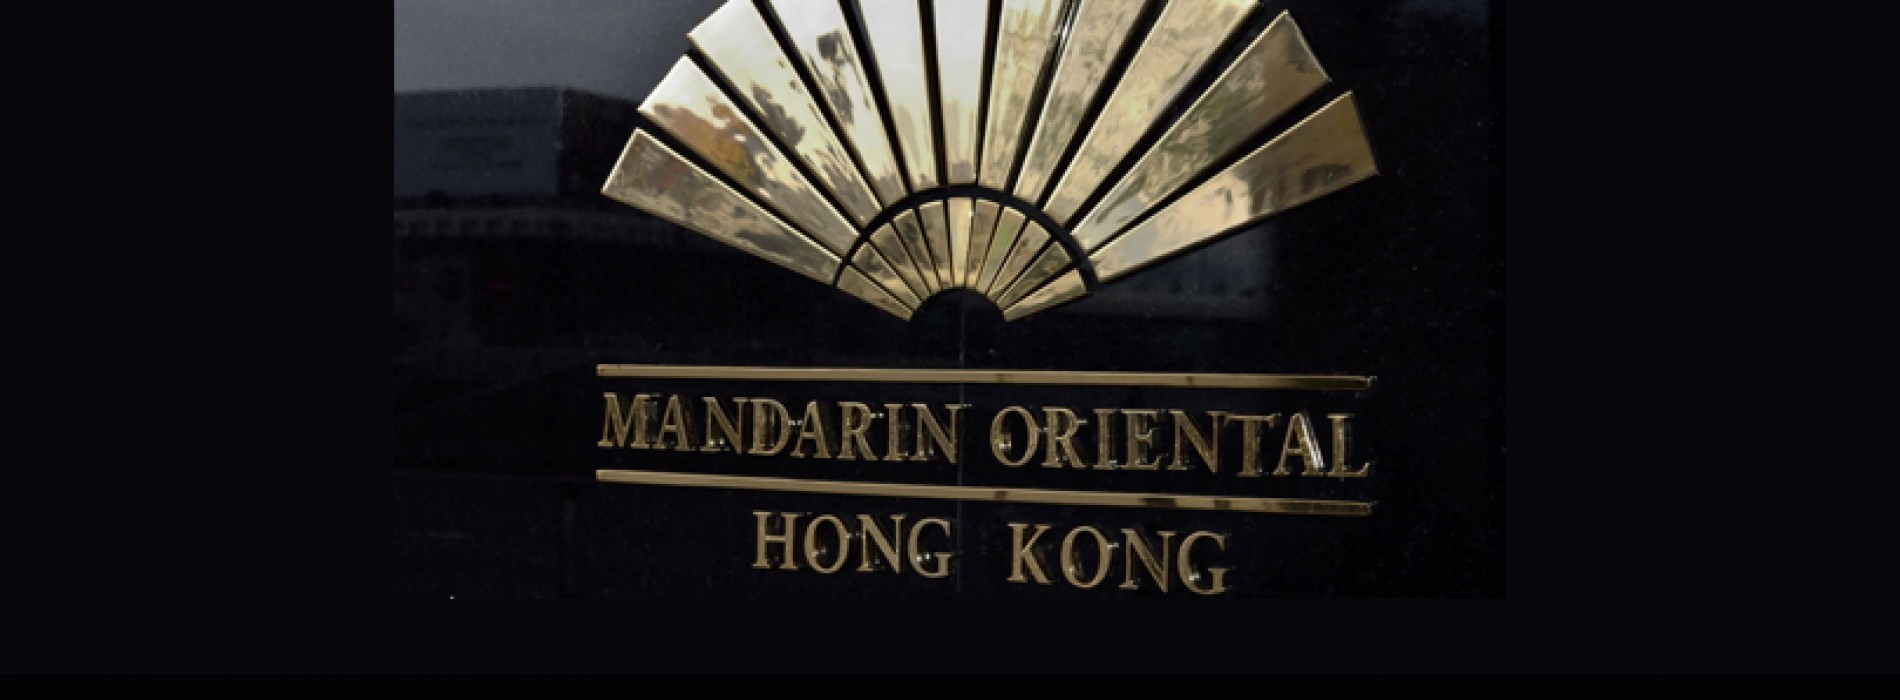 Mandarin Oriental, Hong Kong presents exclusive package for Art Lovers